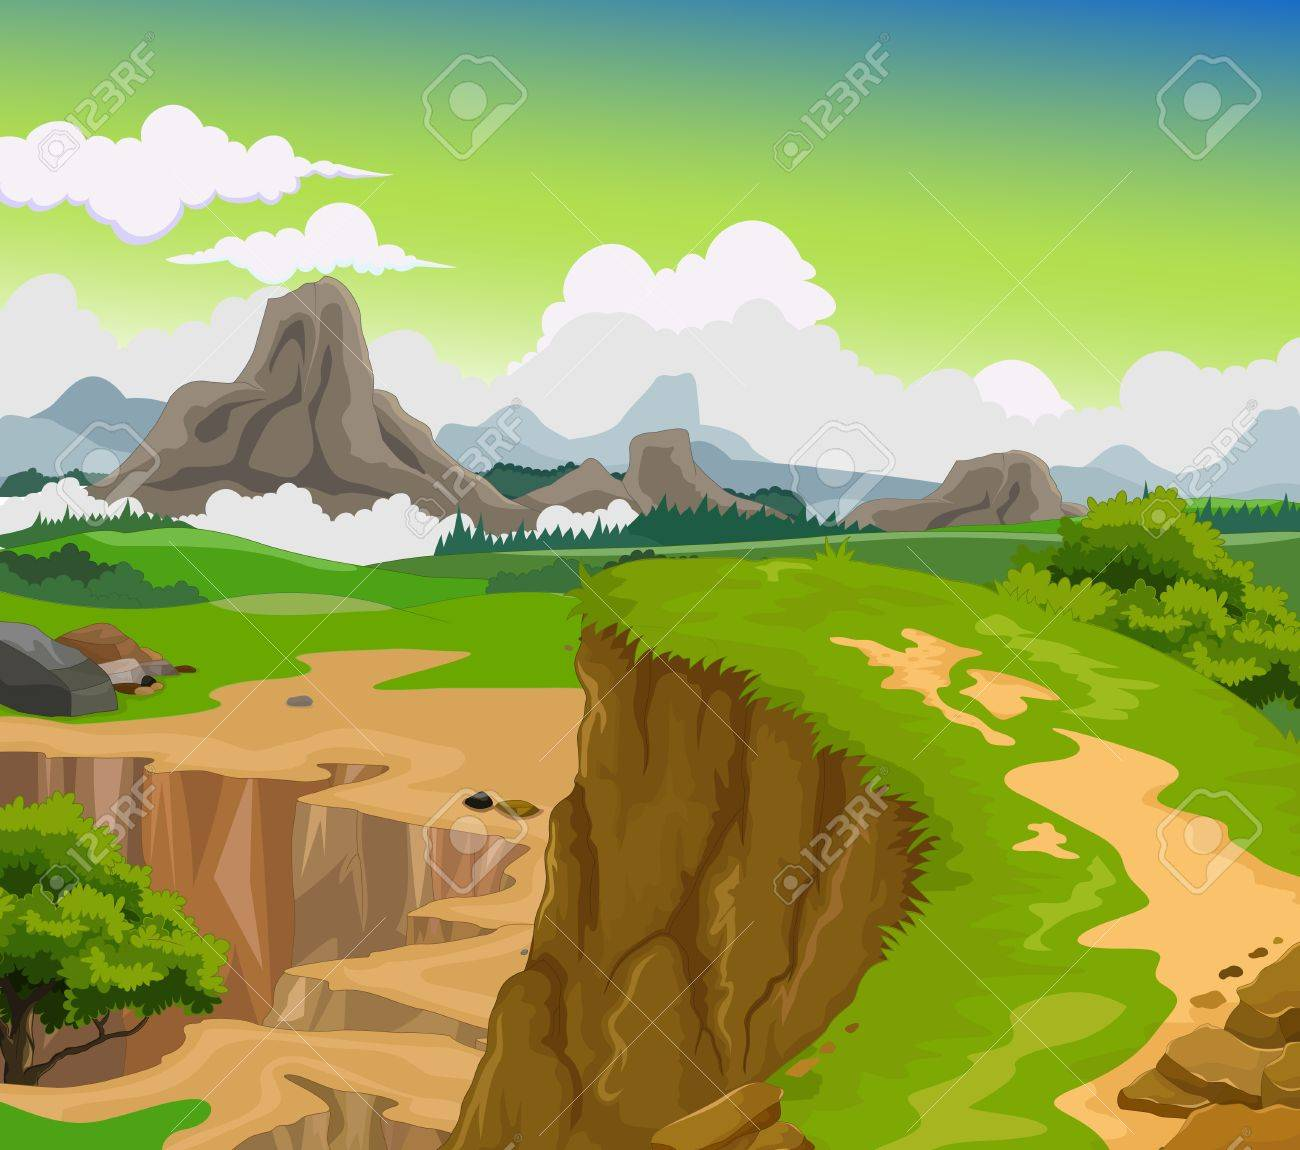 beauty cliff with mountain landscape background - 59245335